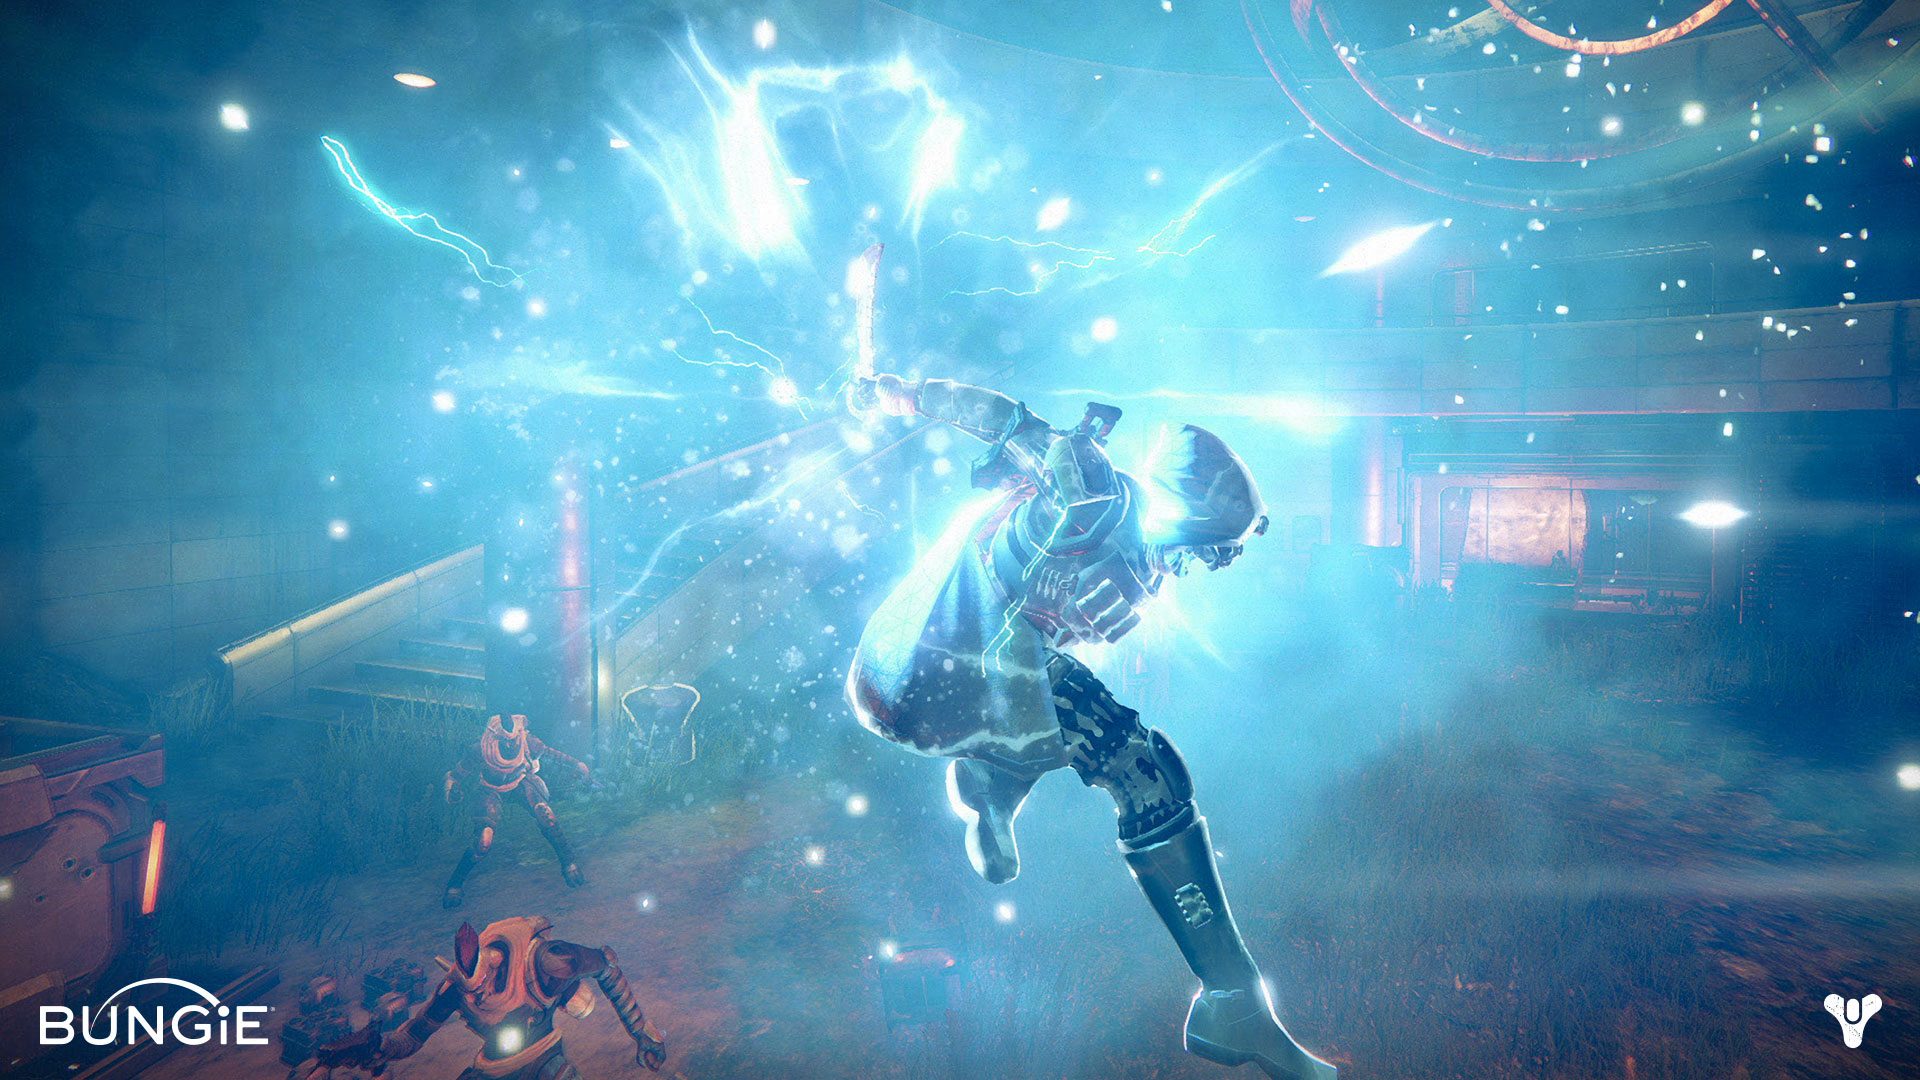 Space Magic Destiny Video Game HD 1920x1080 1080p And Compatible For